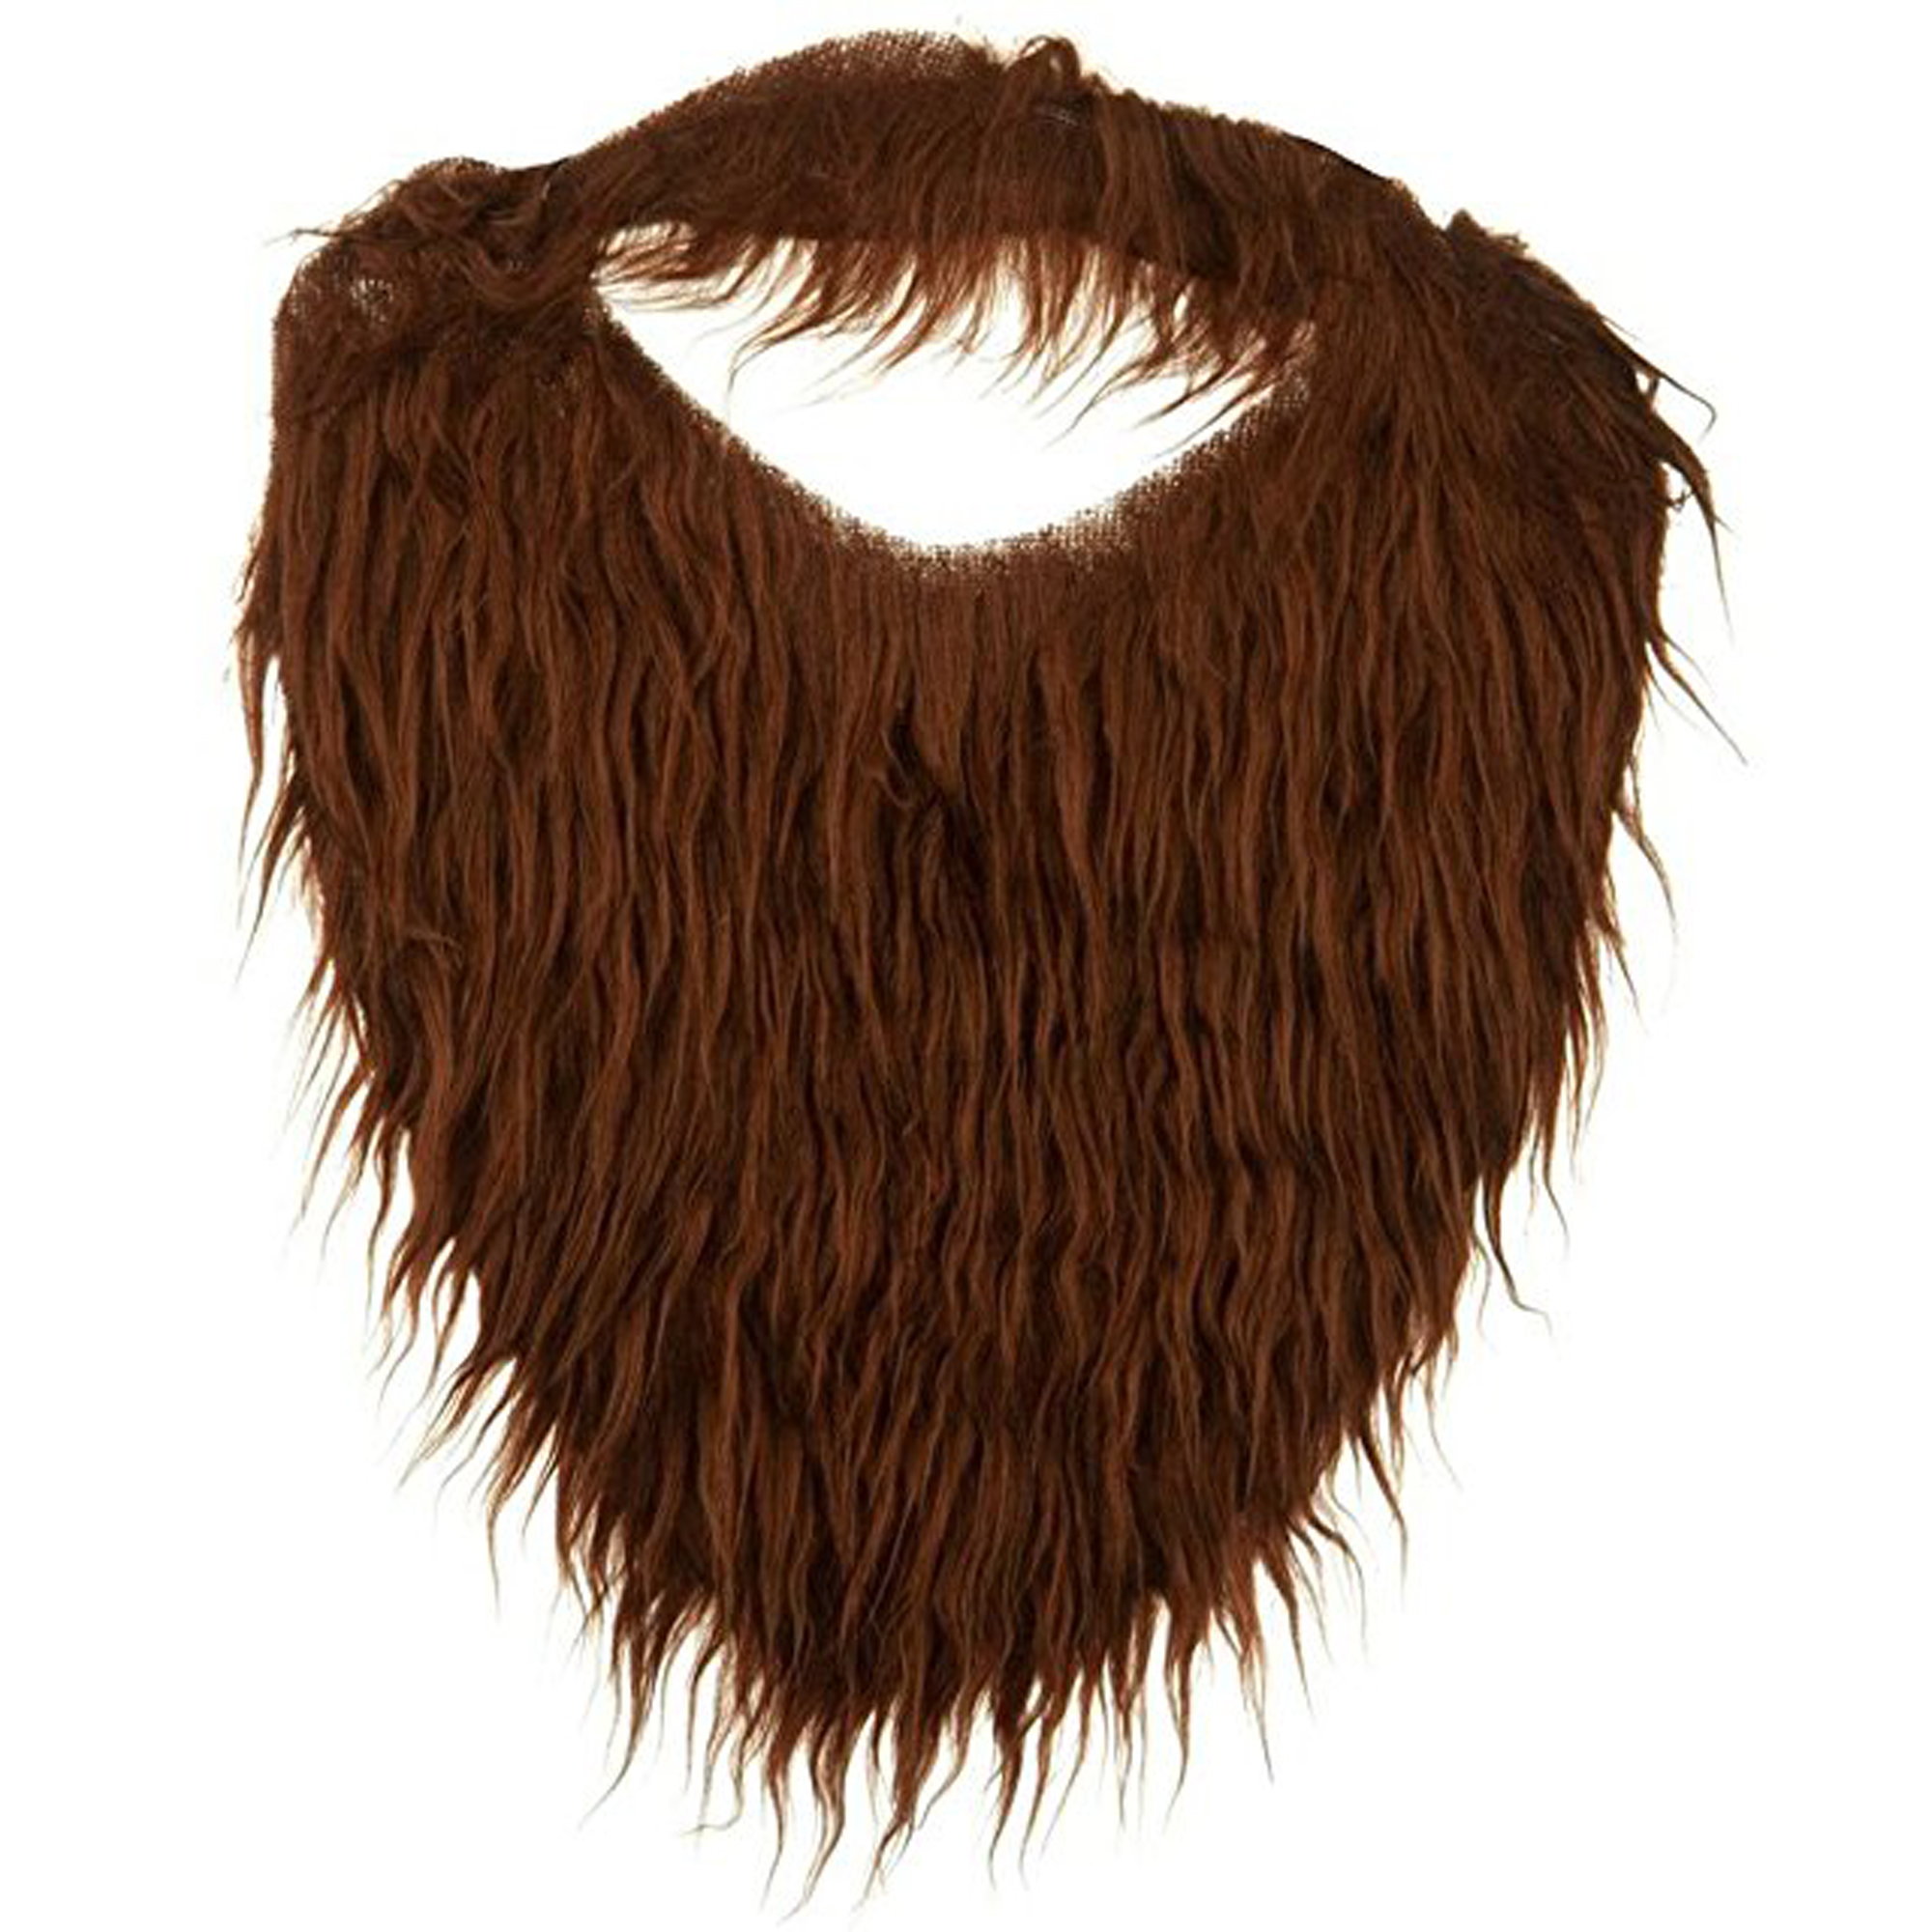 Child or Adult Sized Trimmable Beard & Mustache Combo Brown